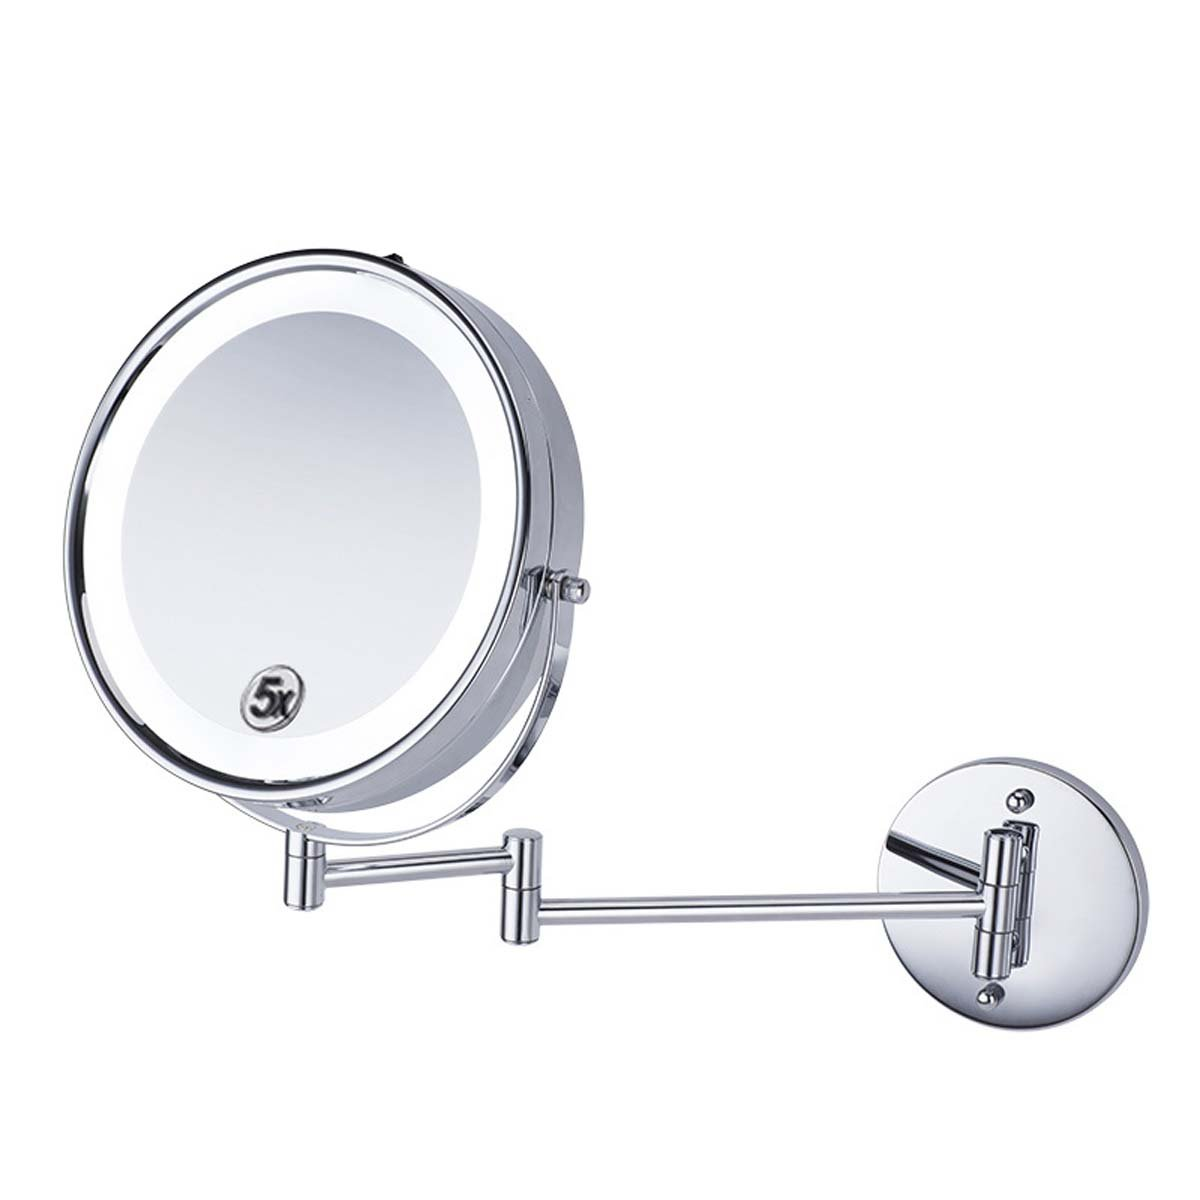 J&A 8.5 inch led illuminated bathroom mirror Folding beauty mounted telescopic bathroom mirror Magnifier, 5x magnification wall mounted shaving mirror